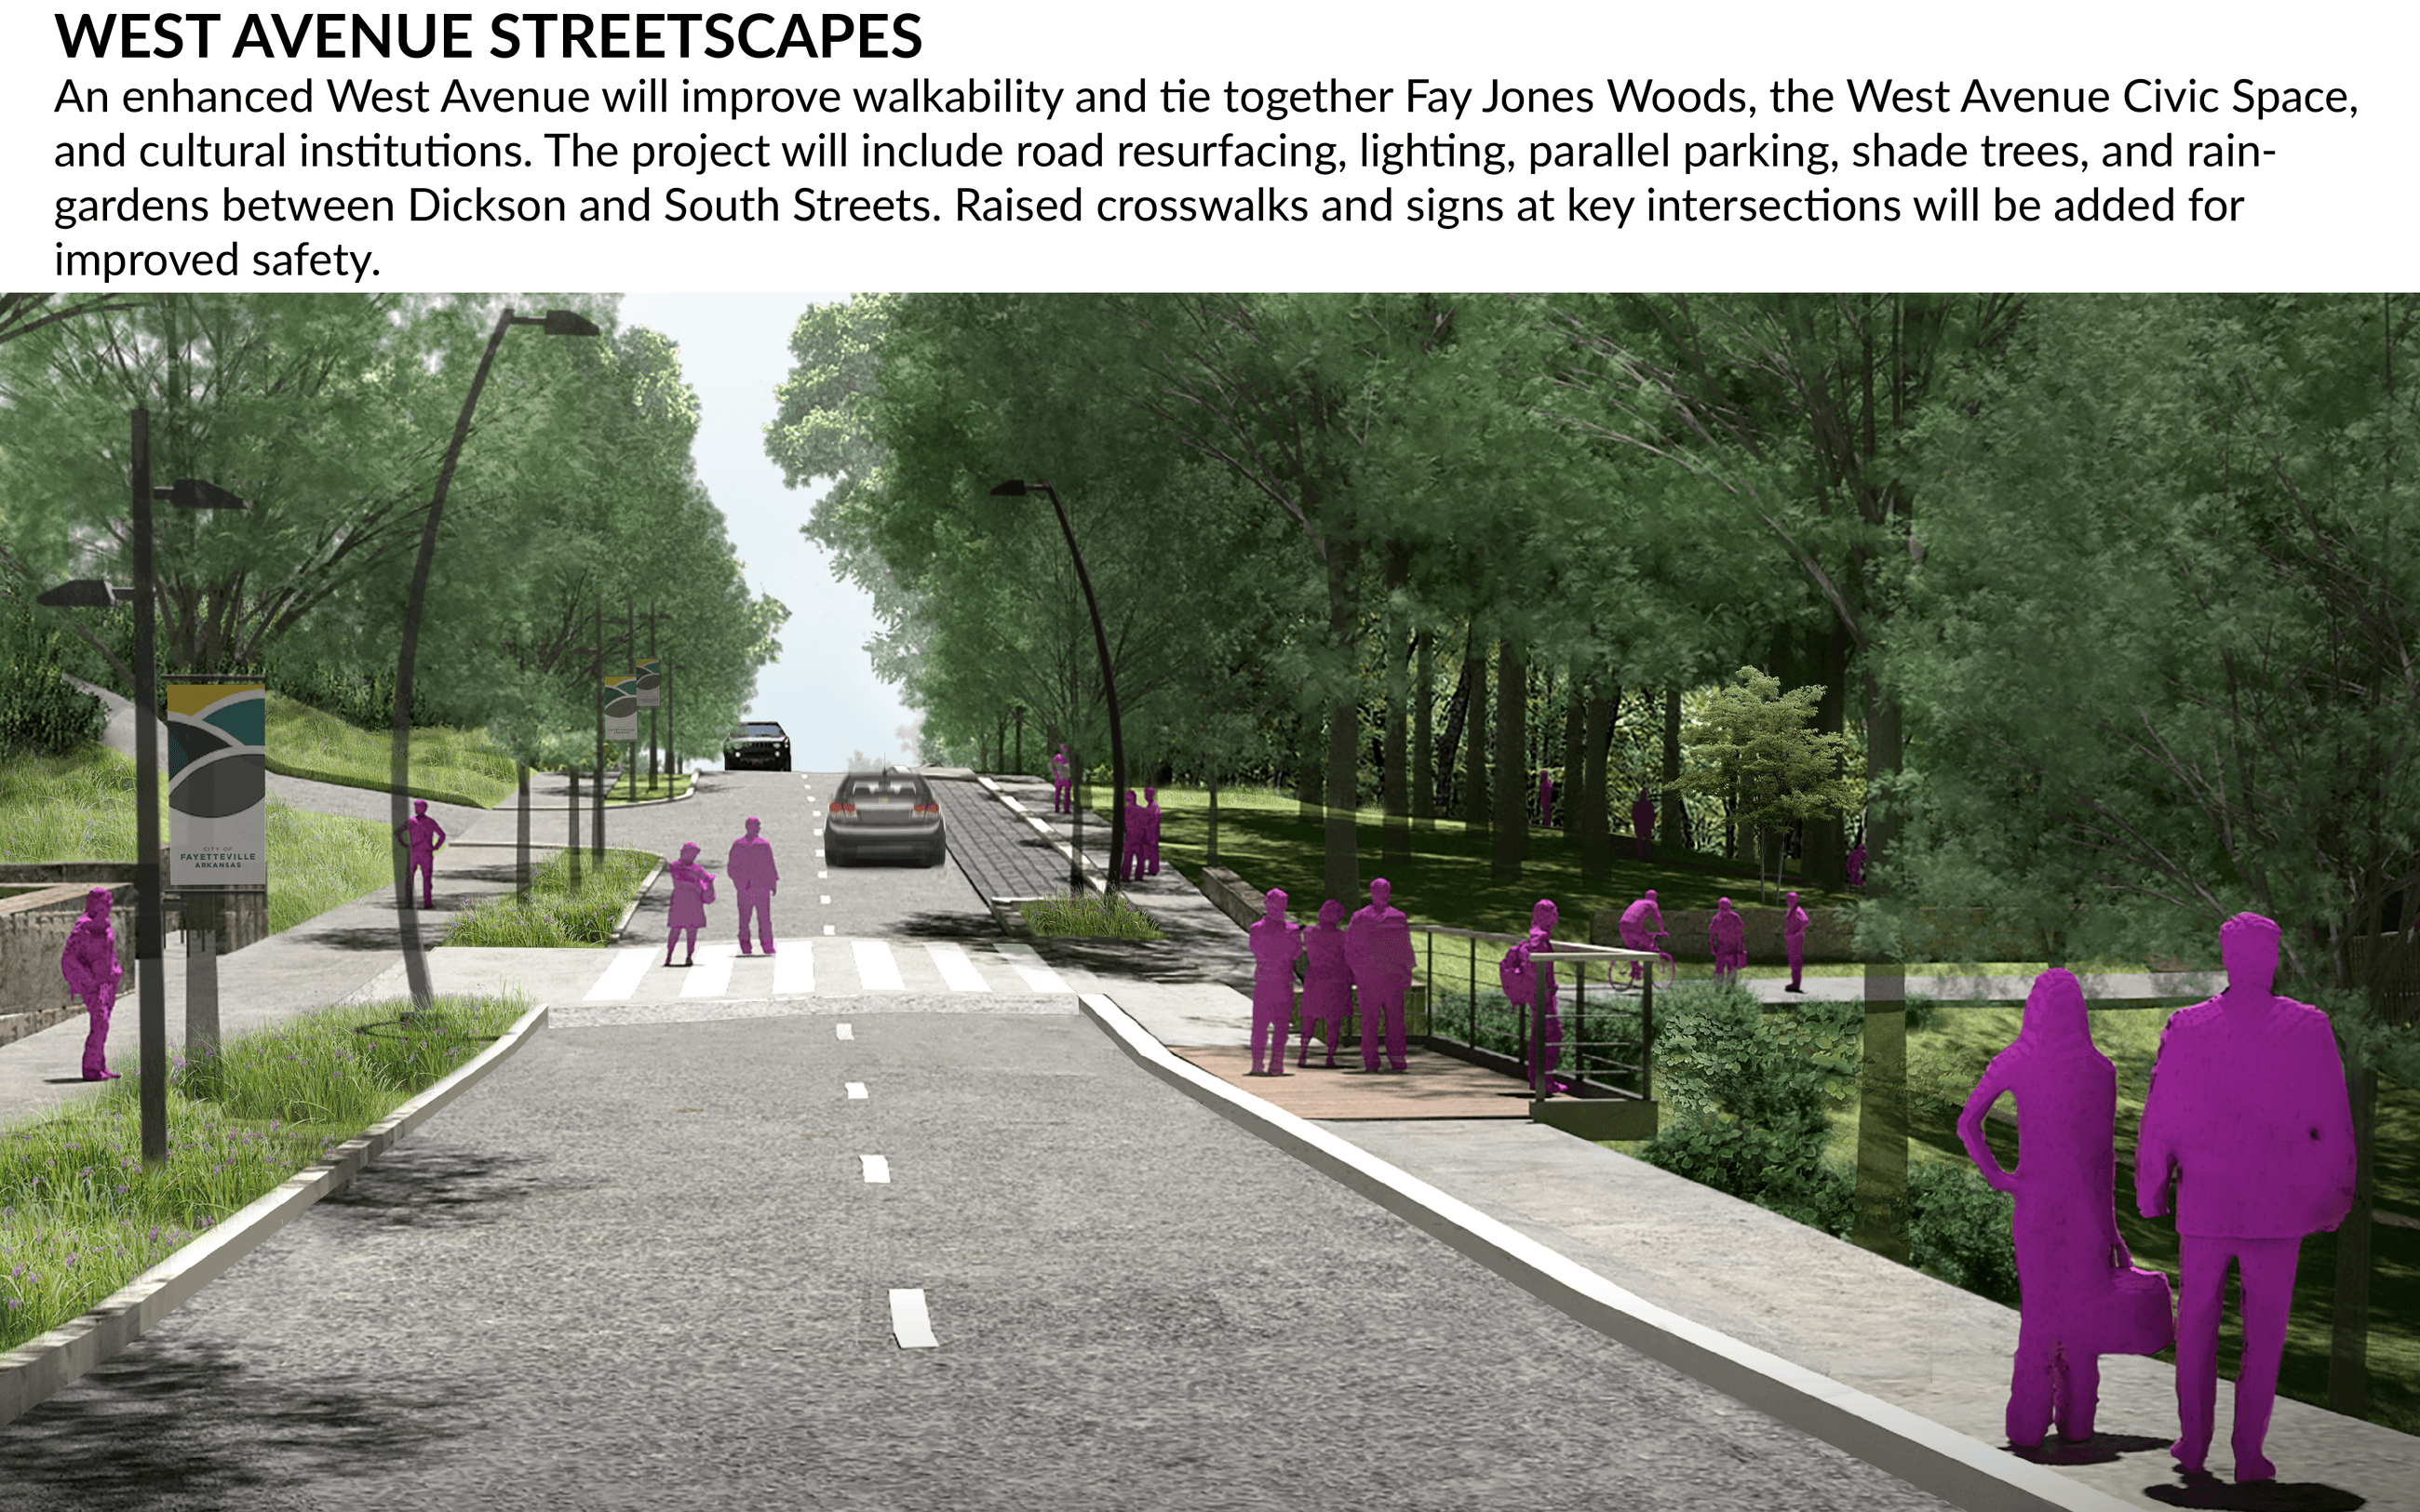 Artists rendering of West Avenue streetscapes